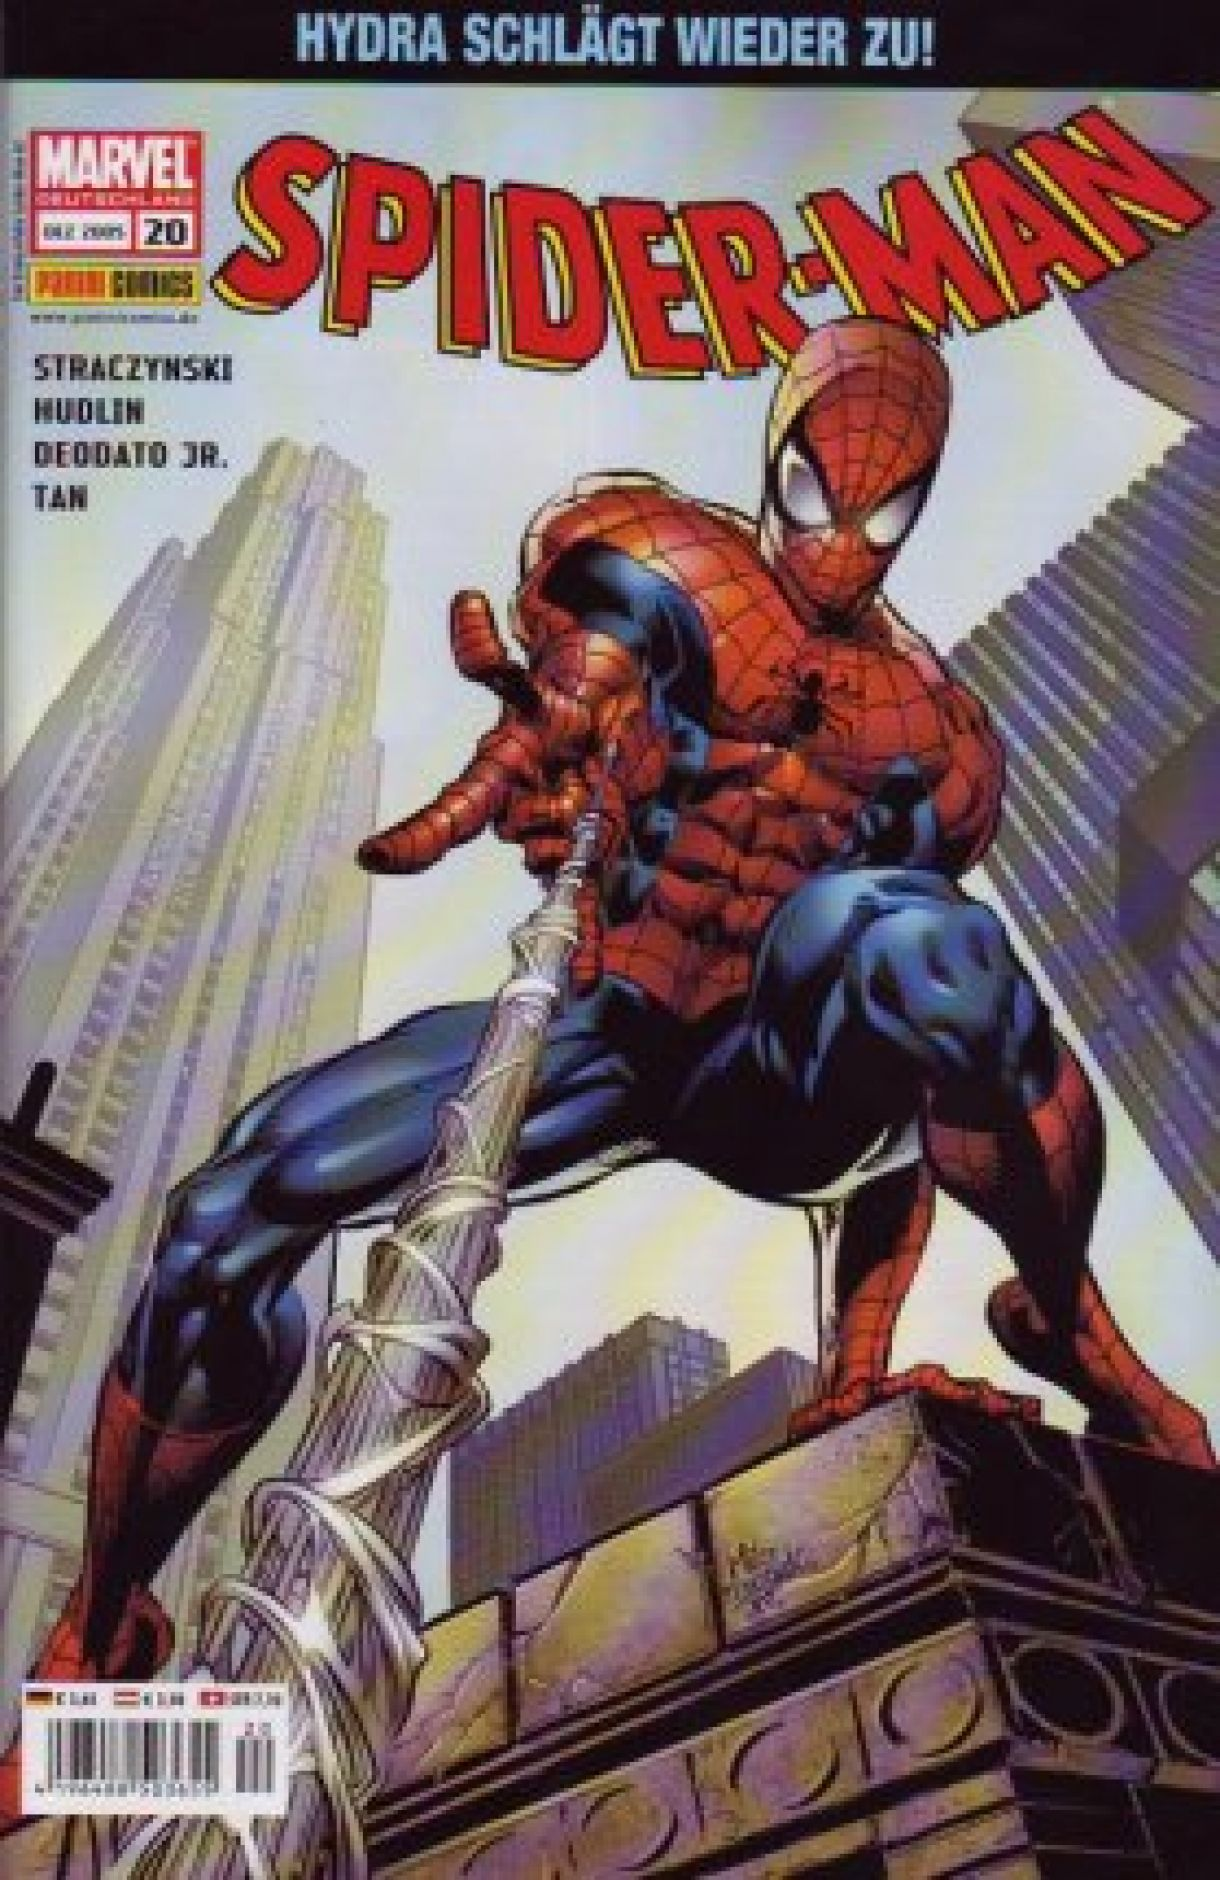 Spiderman © Panini Comics